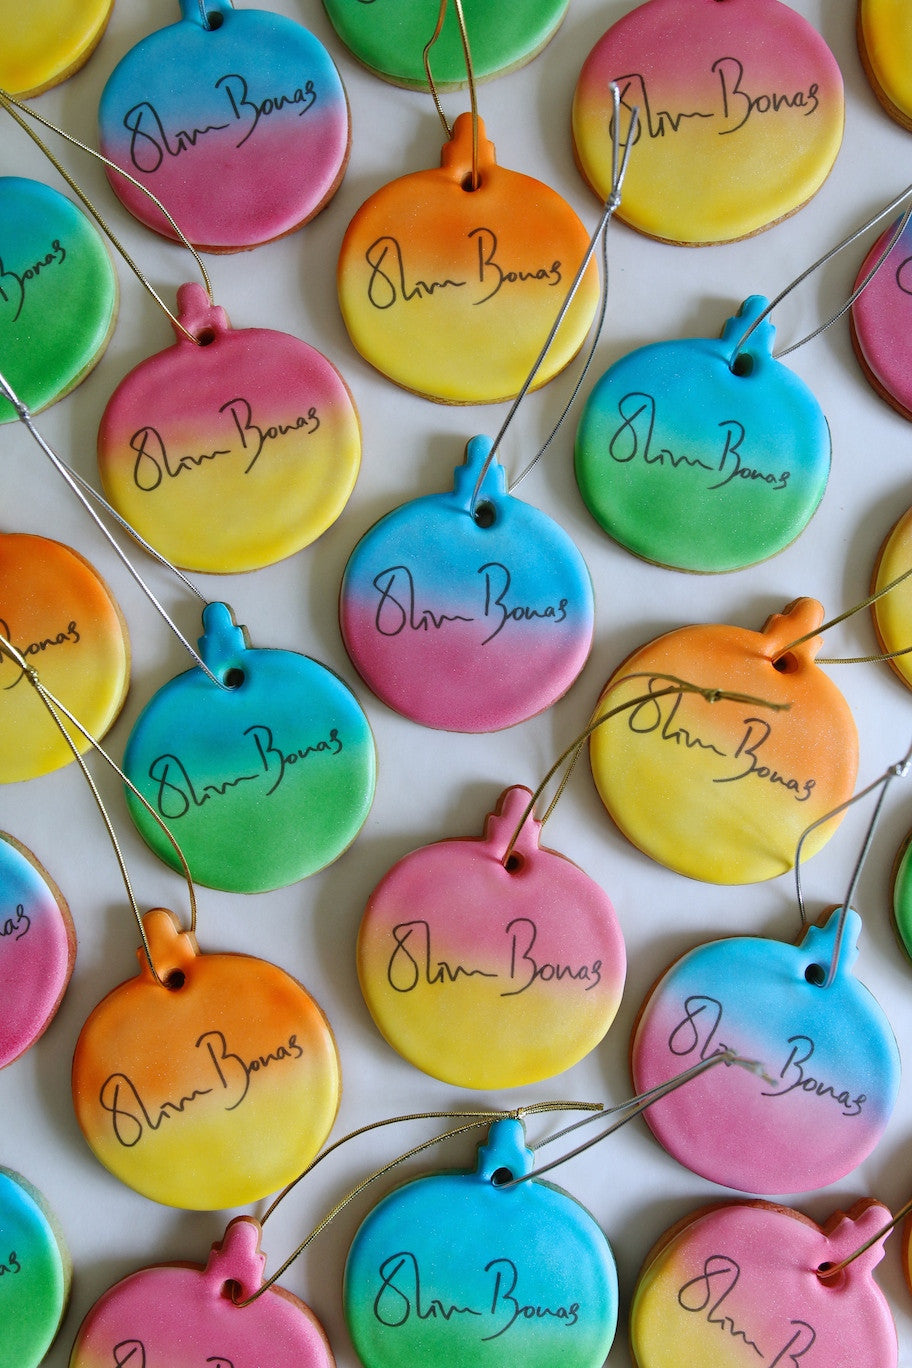 Oliver Bonas Branded Christmas Bauble Biscuits